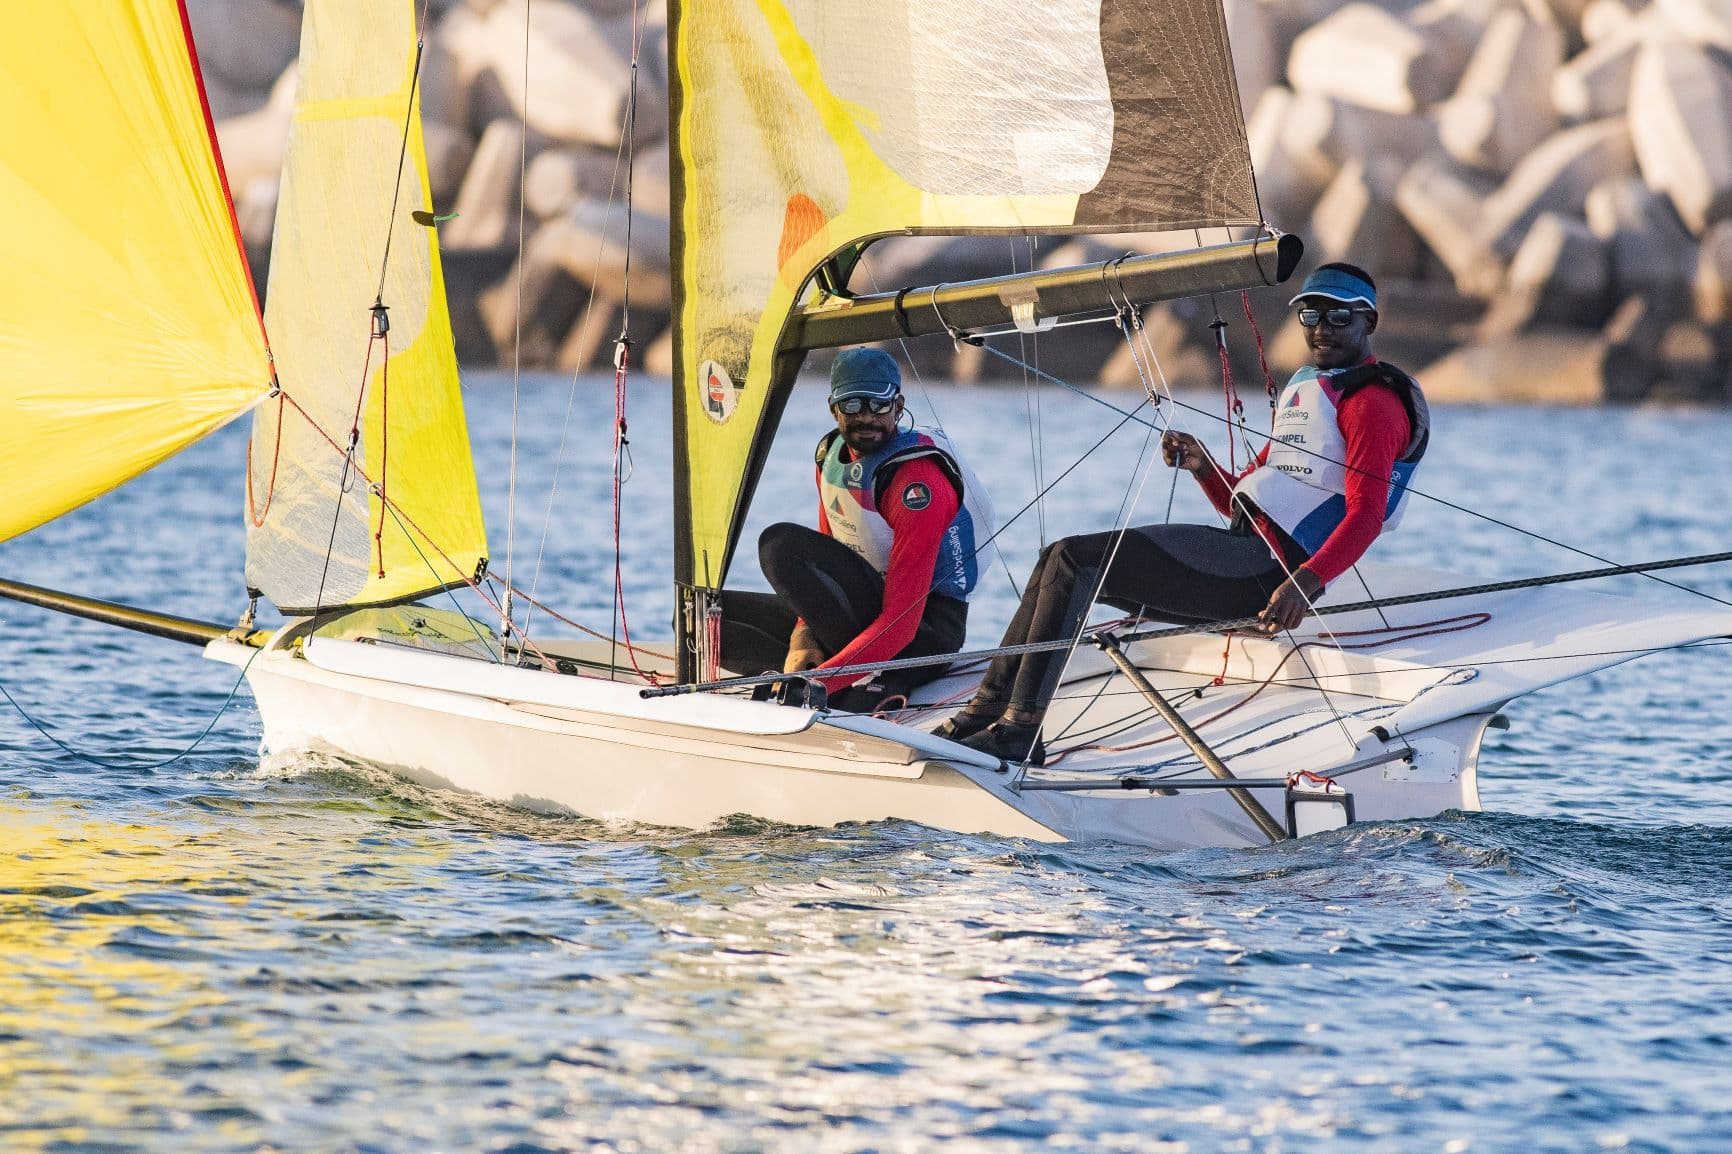 Oman Sail's 49er team ramps up preparations ahead of 2021 Asian Sailing Championship